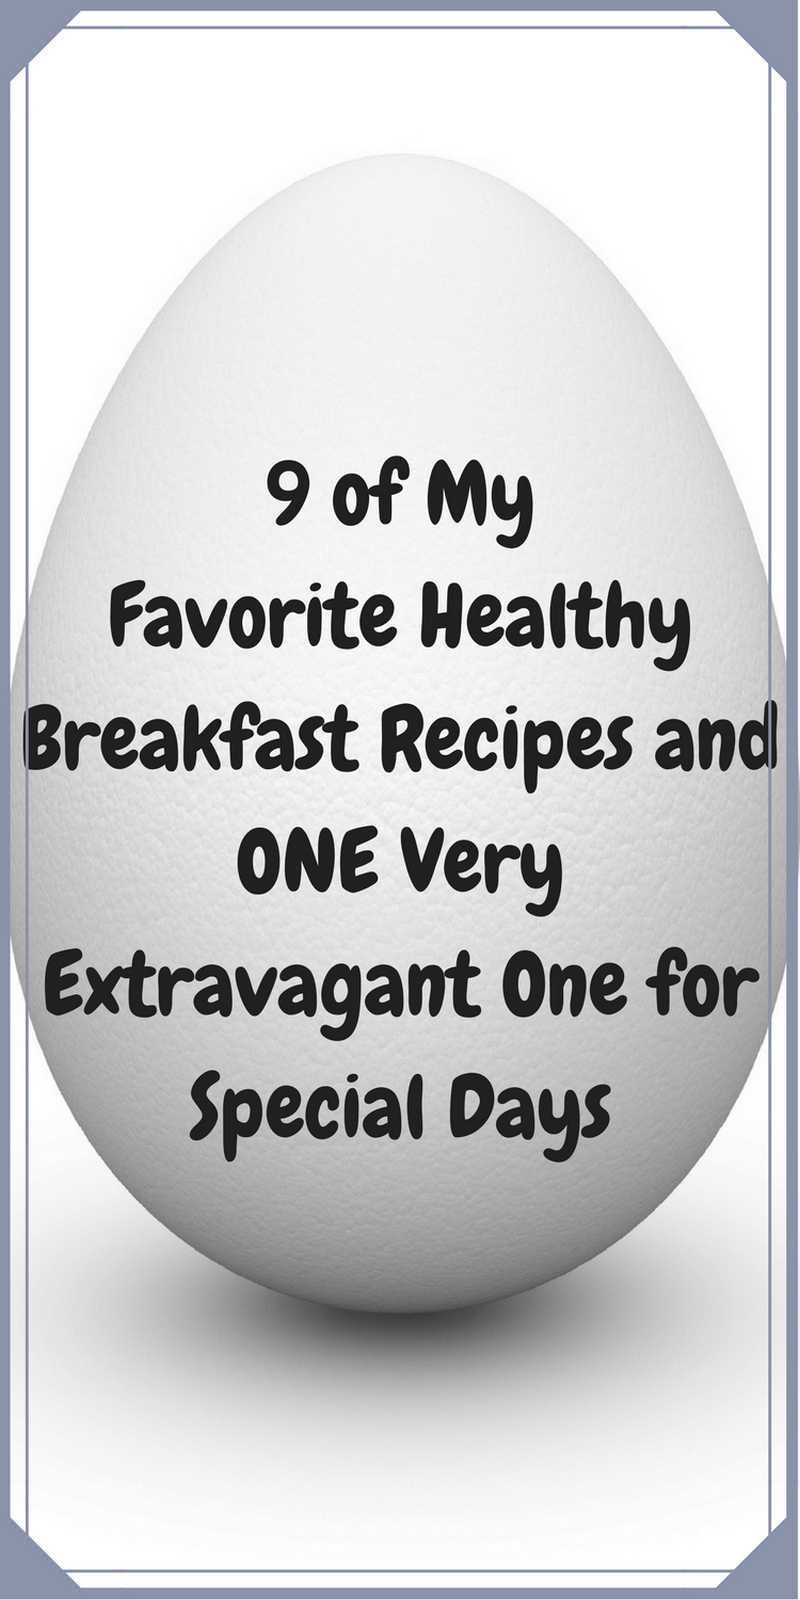 9 of My Favorite Healthy Breakfast Recipes and 1 Very Extravagant One for Special Days | Recipes | Weight Loss Food | Weight Loss Recipes | Healthy Meals | Weight Loss Snack Recipes | Weight Loss Dinner Recipes | Weight Loss Dessert Recipes | Weight Loss Low Carb Recipes | Weight Loss Lunch Recipes | Weight Loss Breakfast Recipes | ARoadtoTravel.com